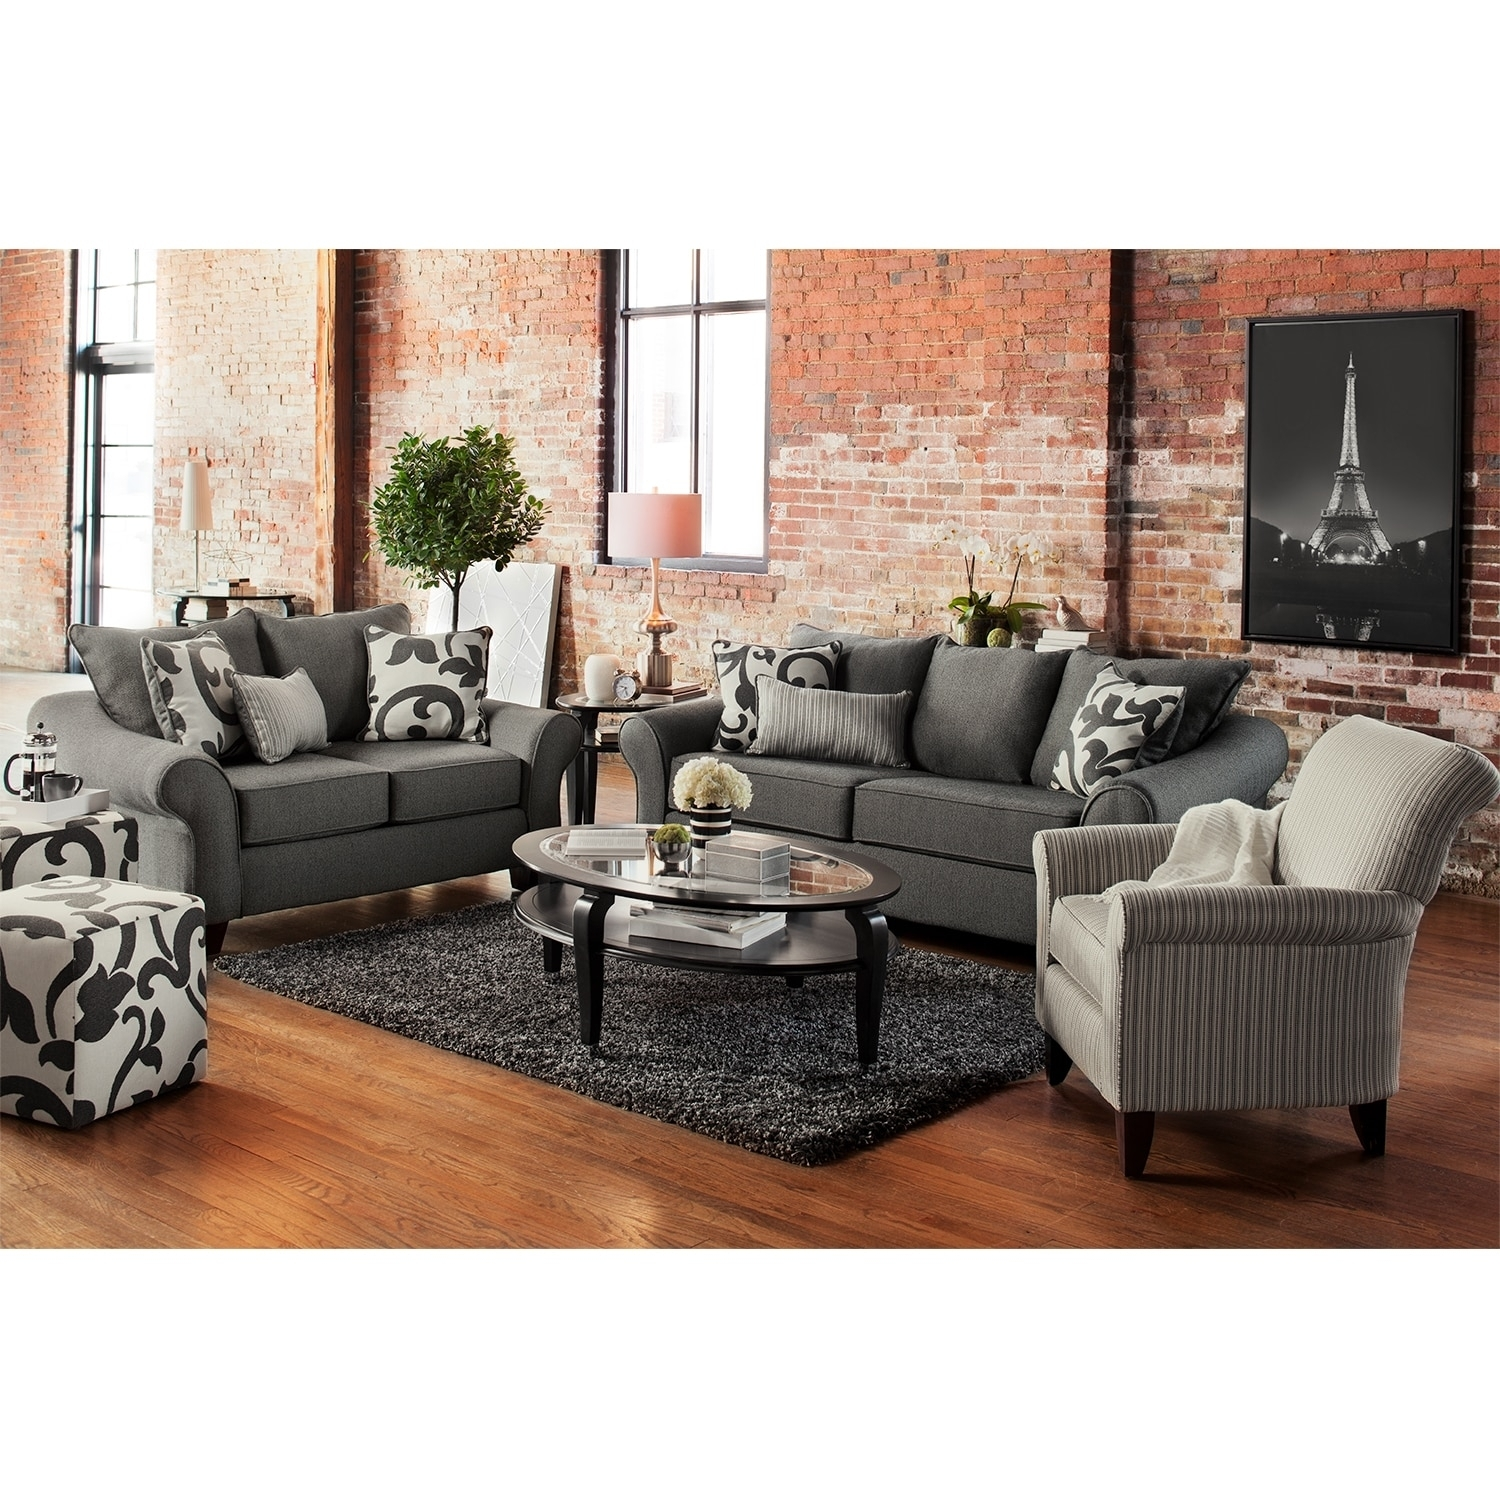 Colette Sofa Loveseat And Accent Chair Set Gray American 3 | Evashure Regarding Sofa And Accent Chair Sets (View 10 of 10)